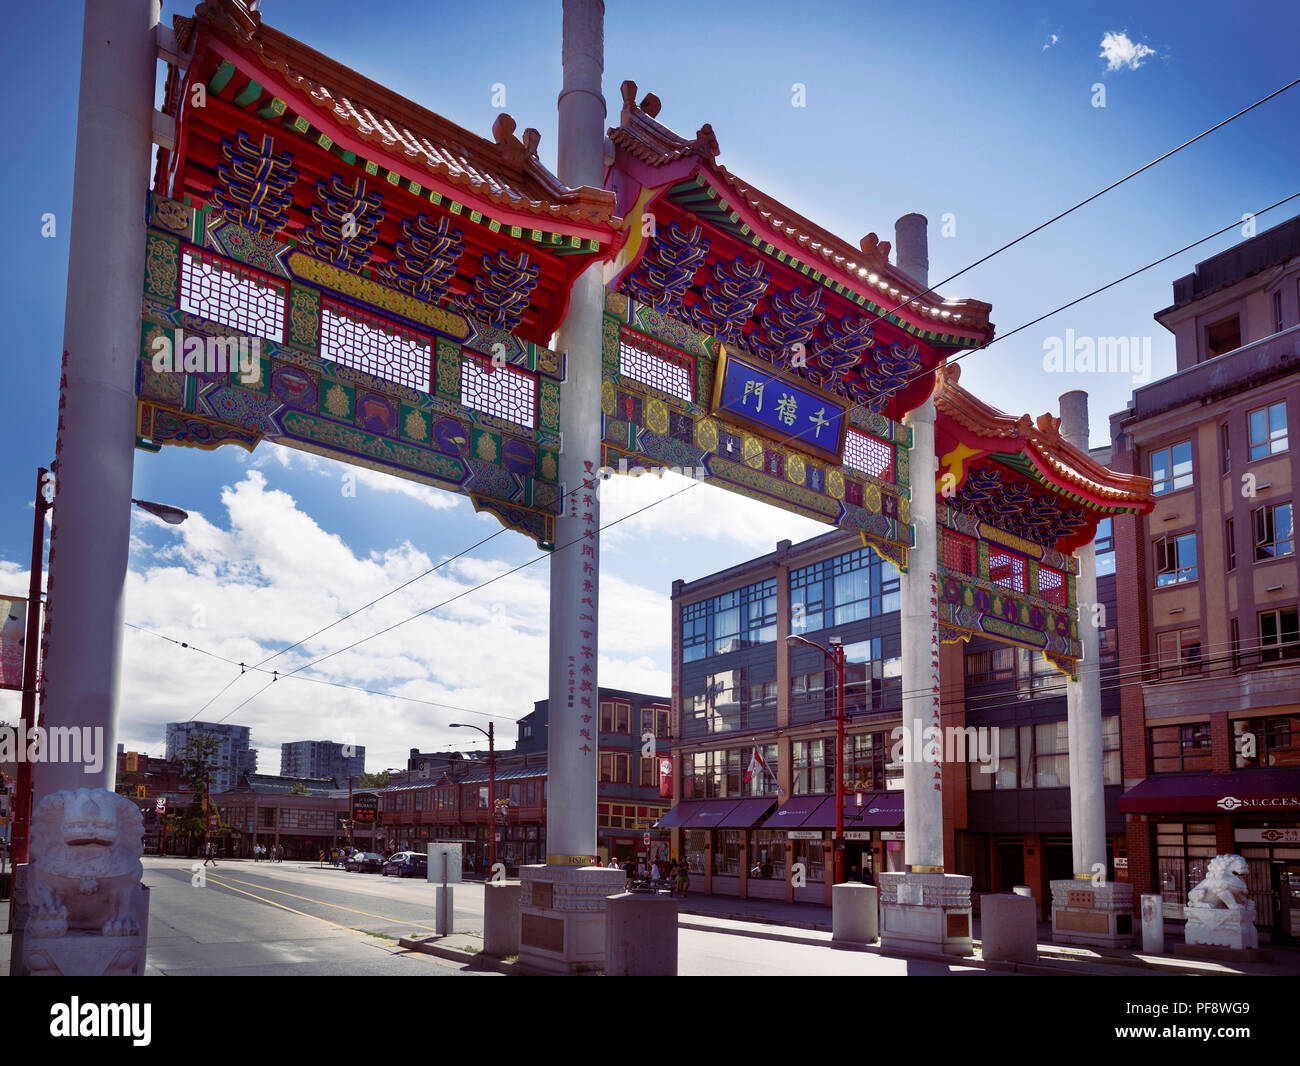 Chinatown Millennium Gate on Pender Street in Vancouver, British Columbia, Canada 2018 Stock Photo